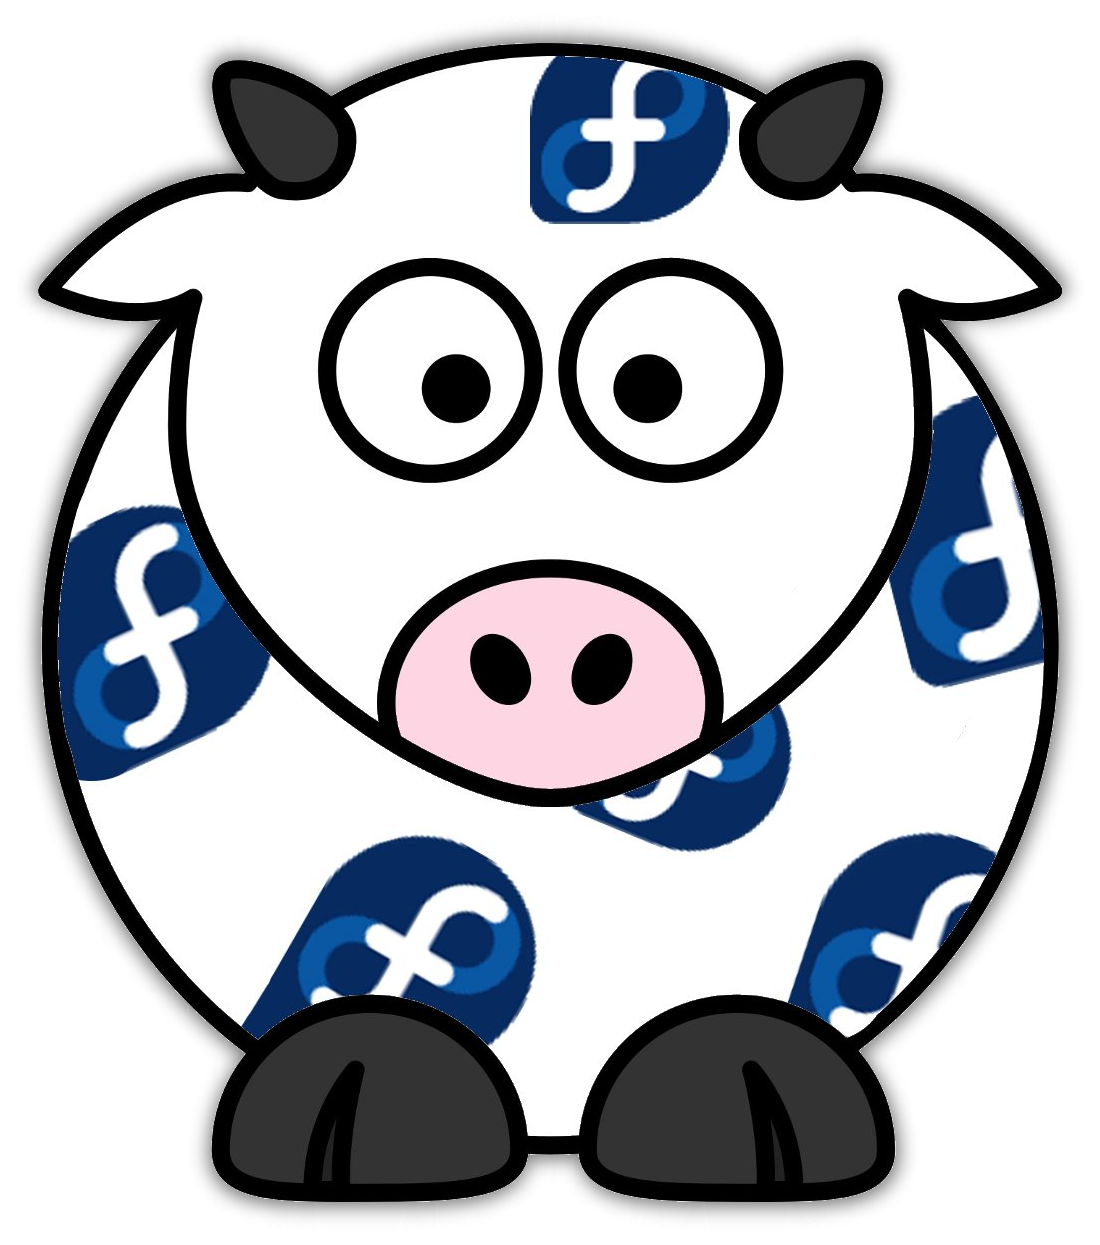 Clipart cow shadow. Spherical